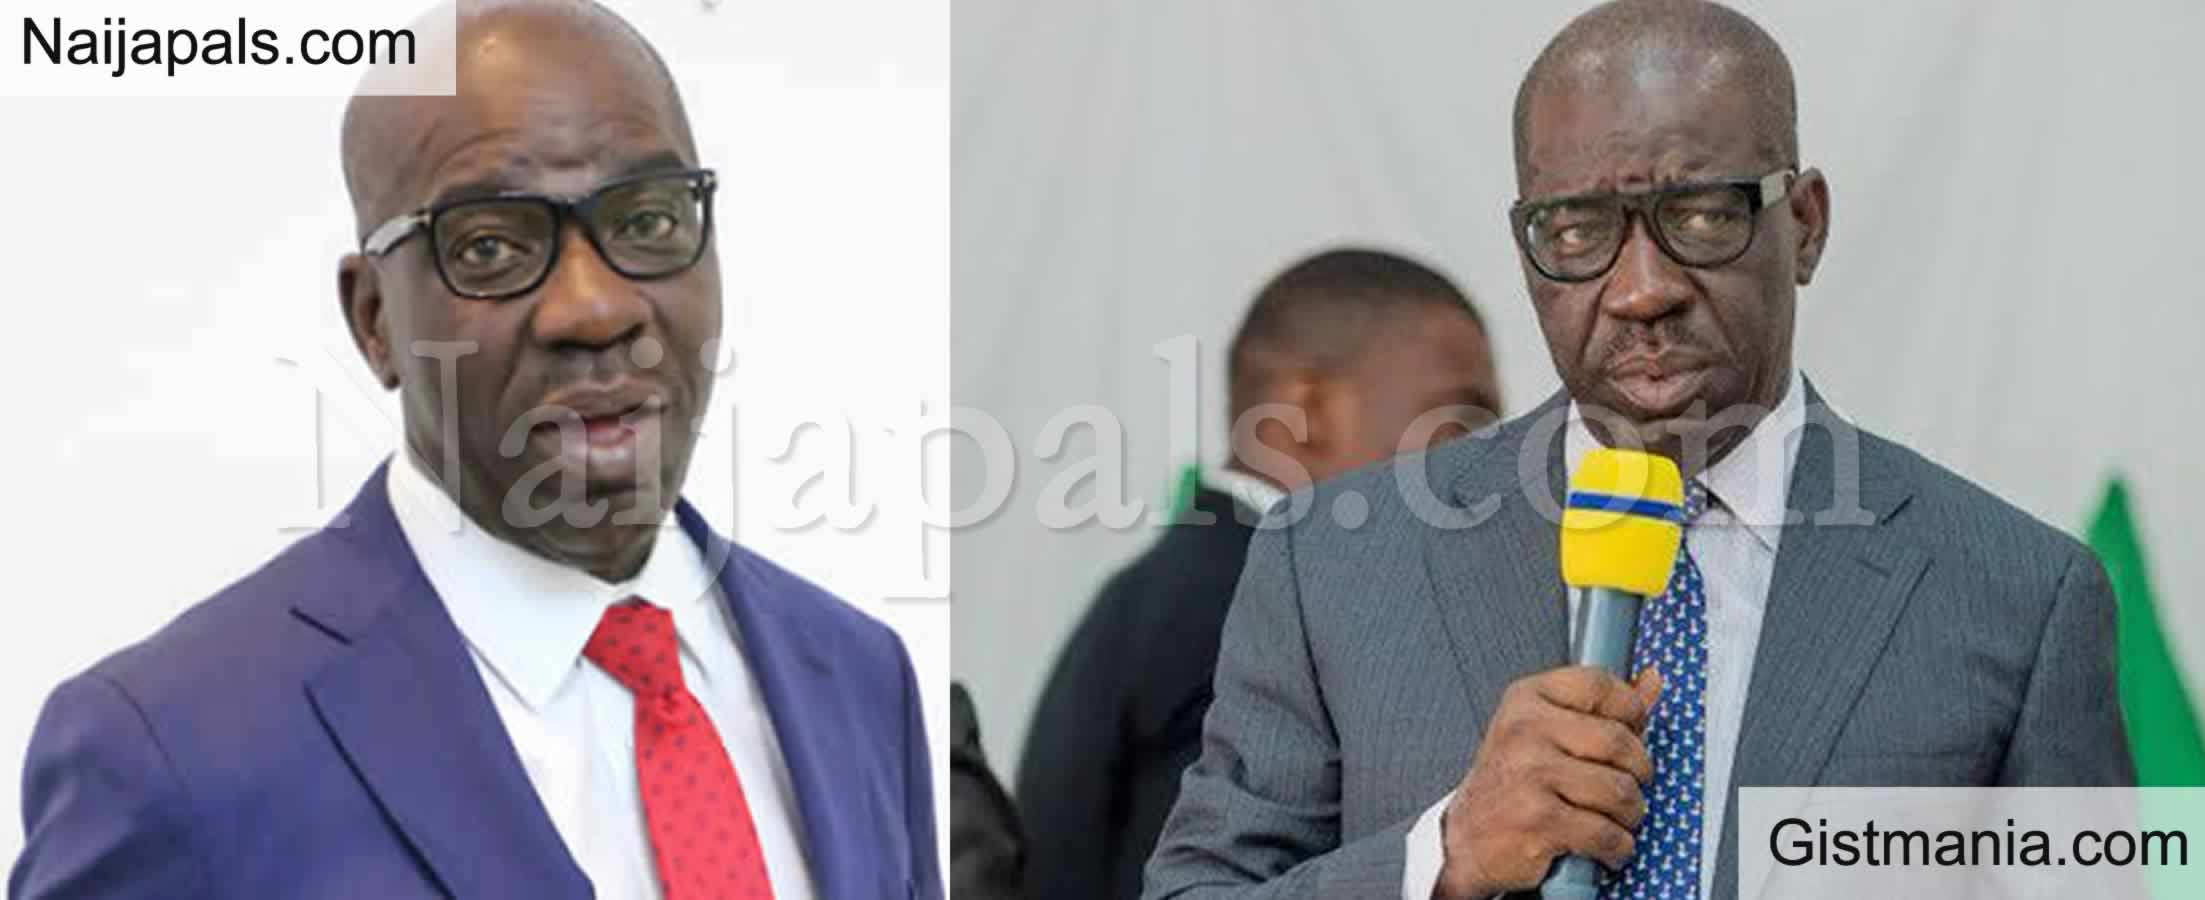 <img alt='.' class='lazyload' data-src='https://img.gistmania.com/emot/comment.gif' /> <b>Gowdin Obaseki In Jubilation After Defeating APC In Edo State Gubernatorial Election</b>